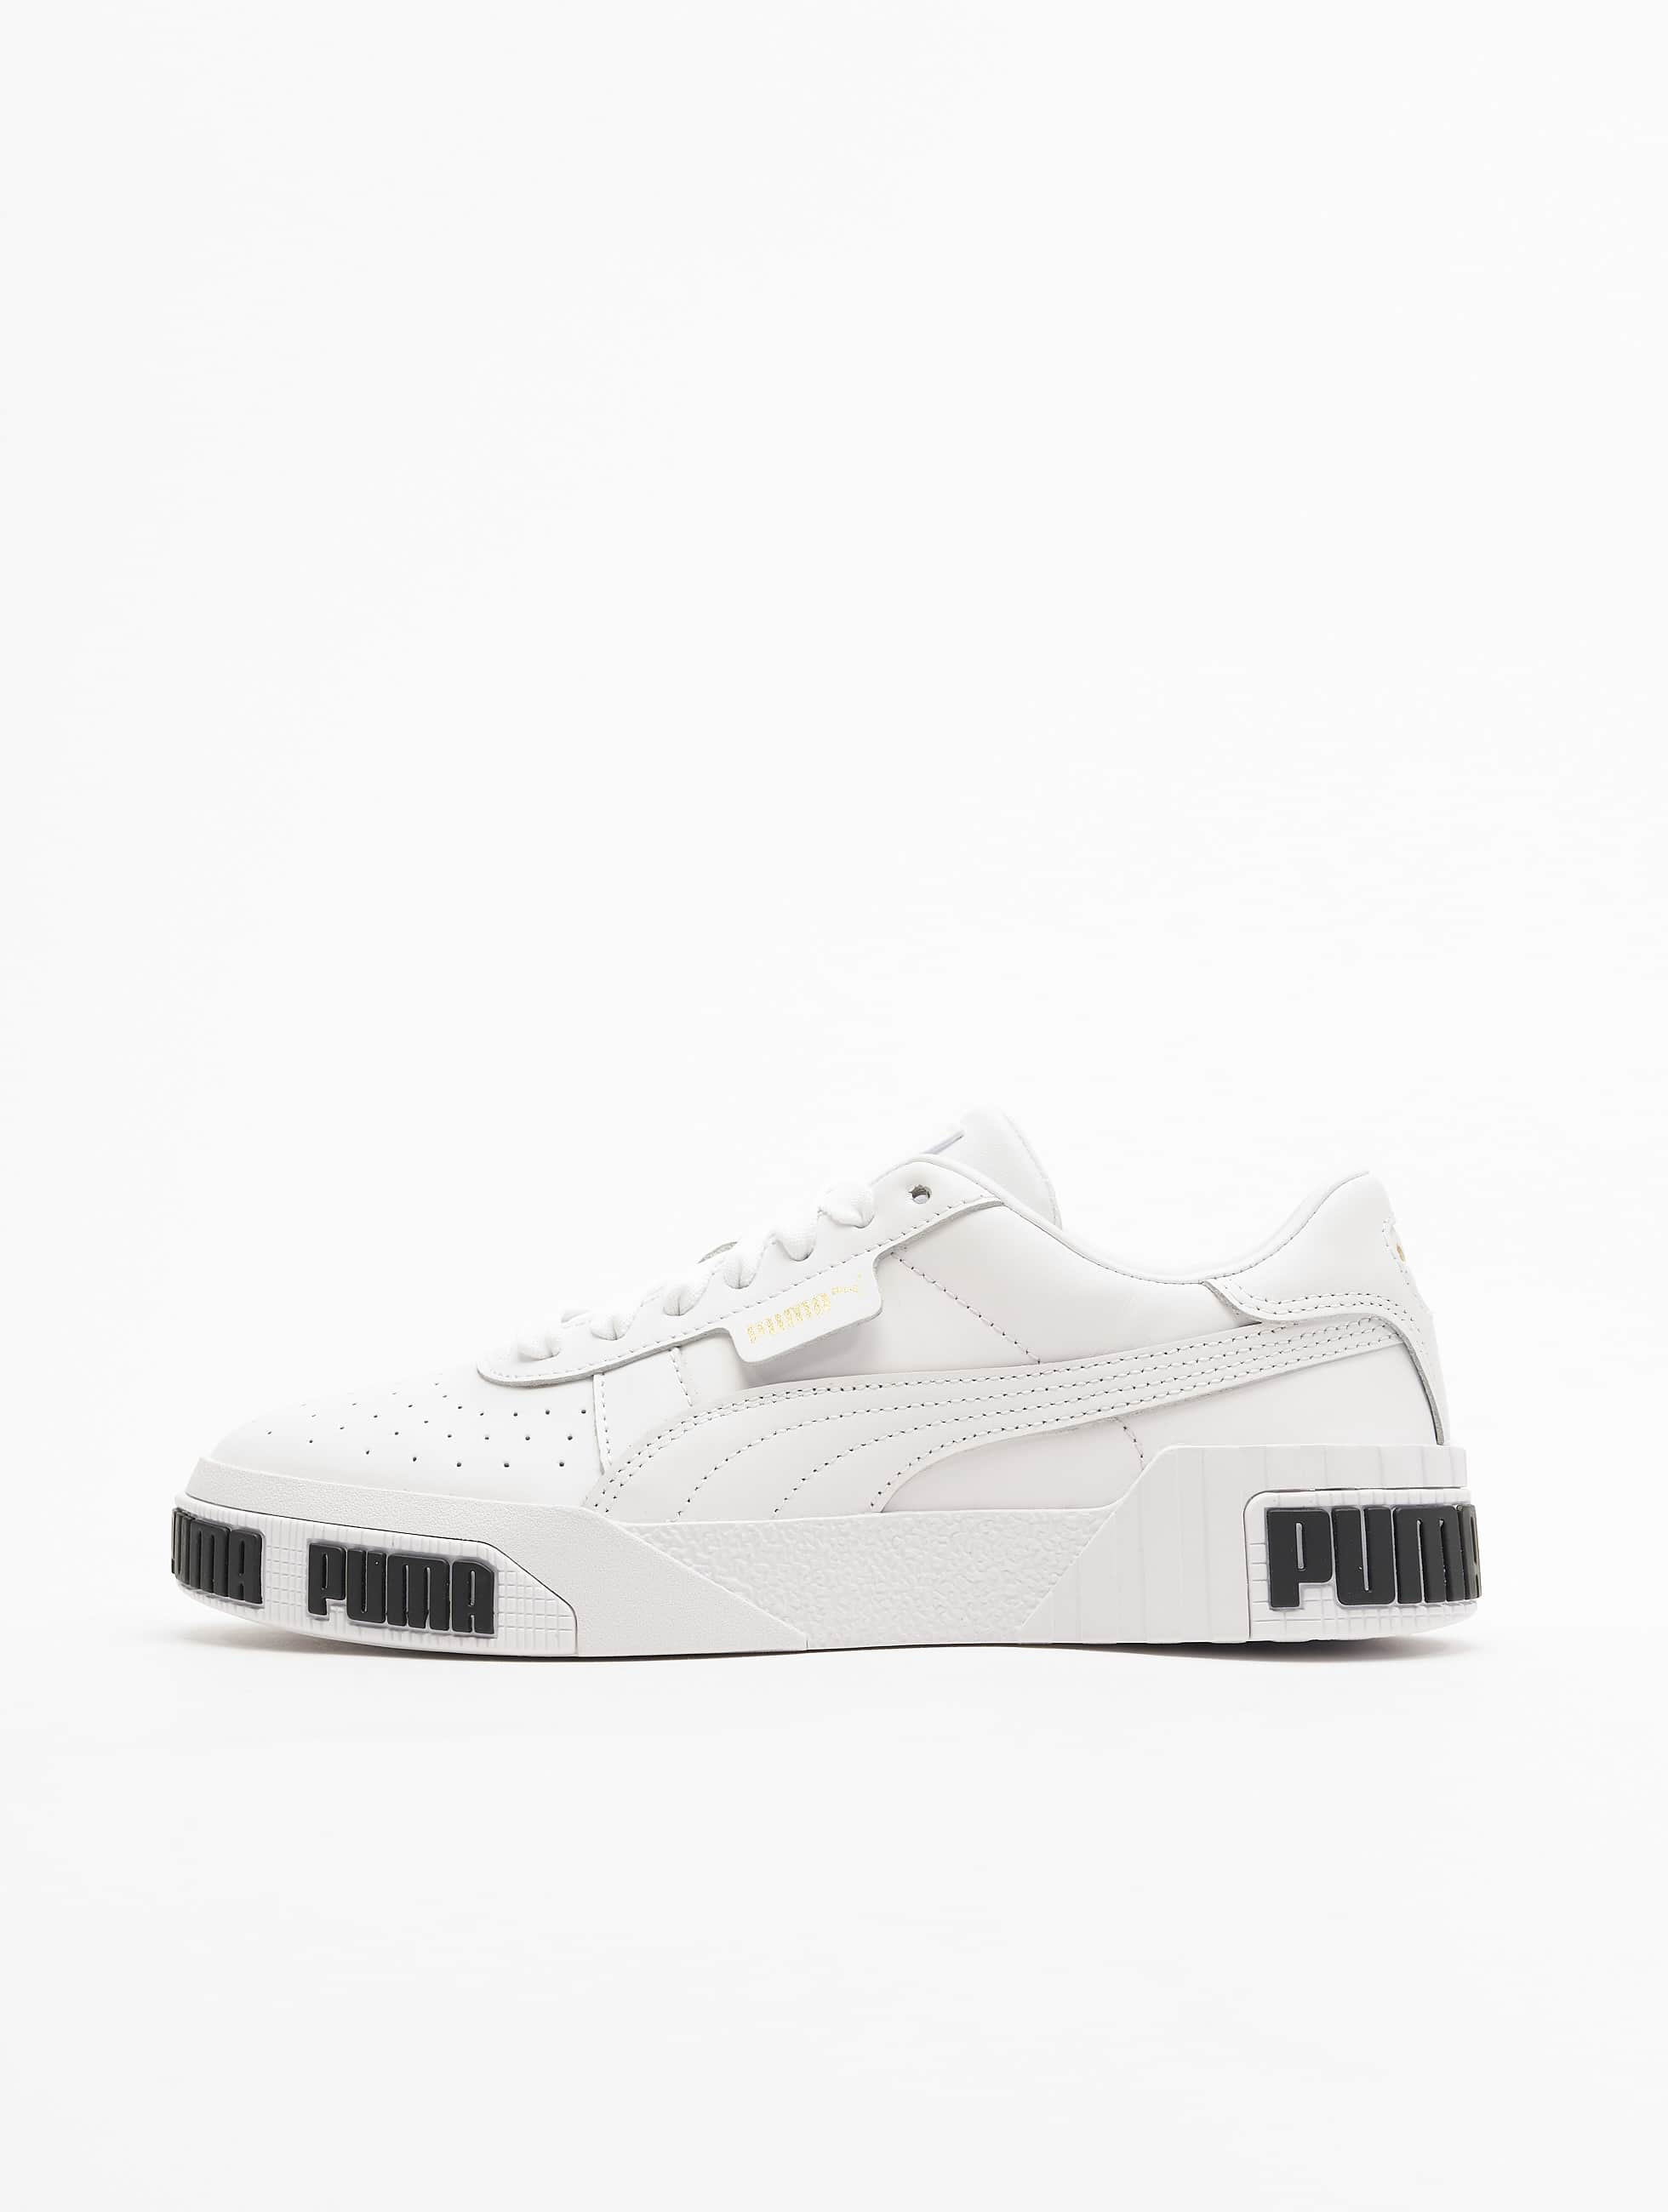 Puma Cali Bold Sneakers Puma WhiteMetallic Golden